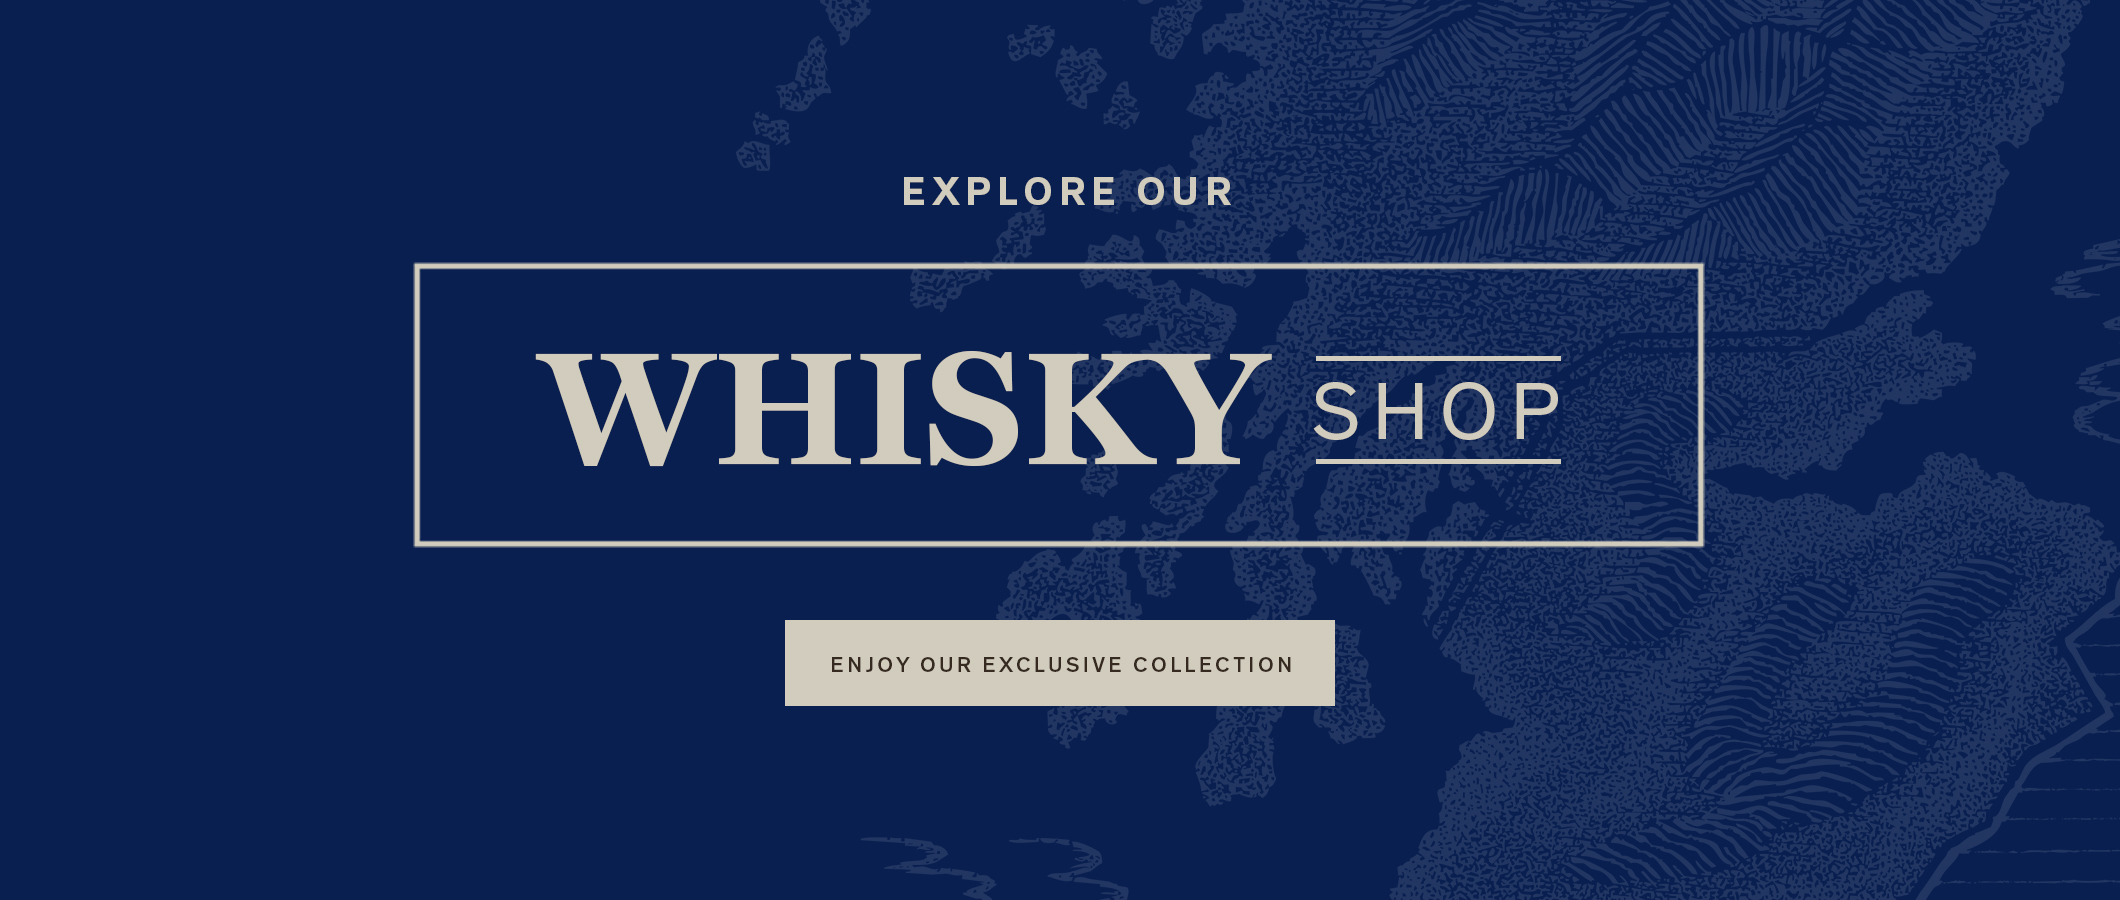 Explore Our Whisky Shop.  ENJOY OUR EXCLUSIVE COLLECTION